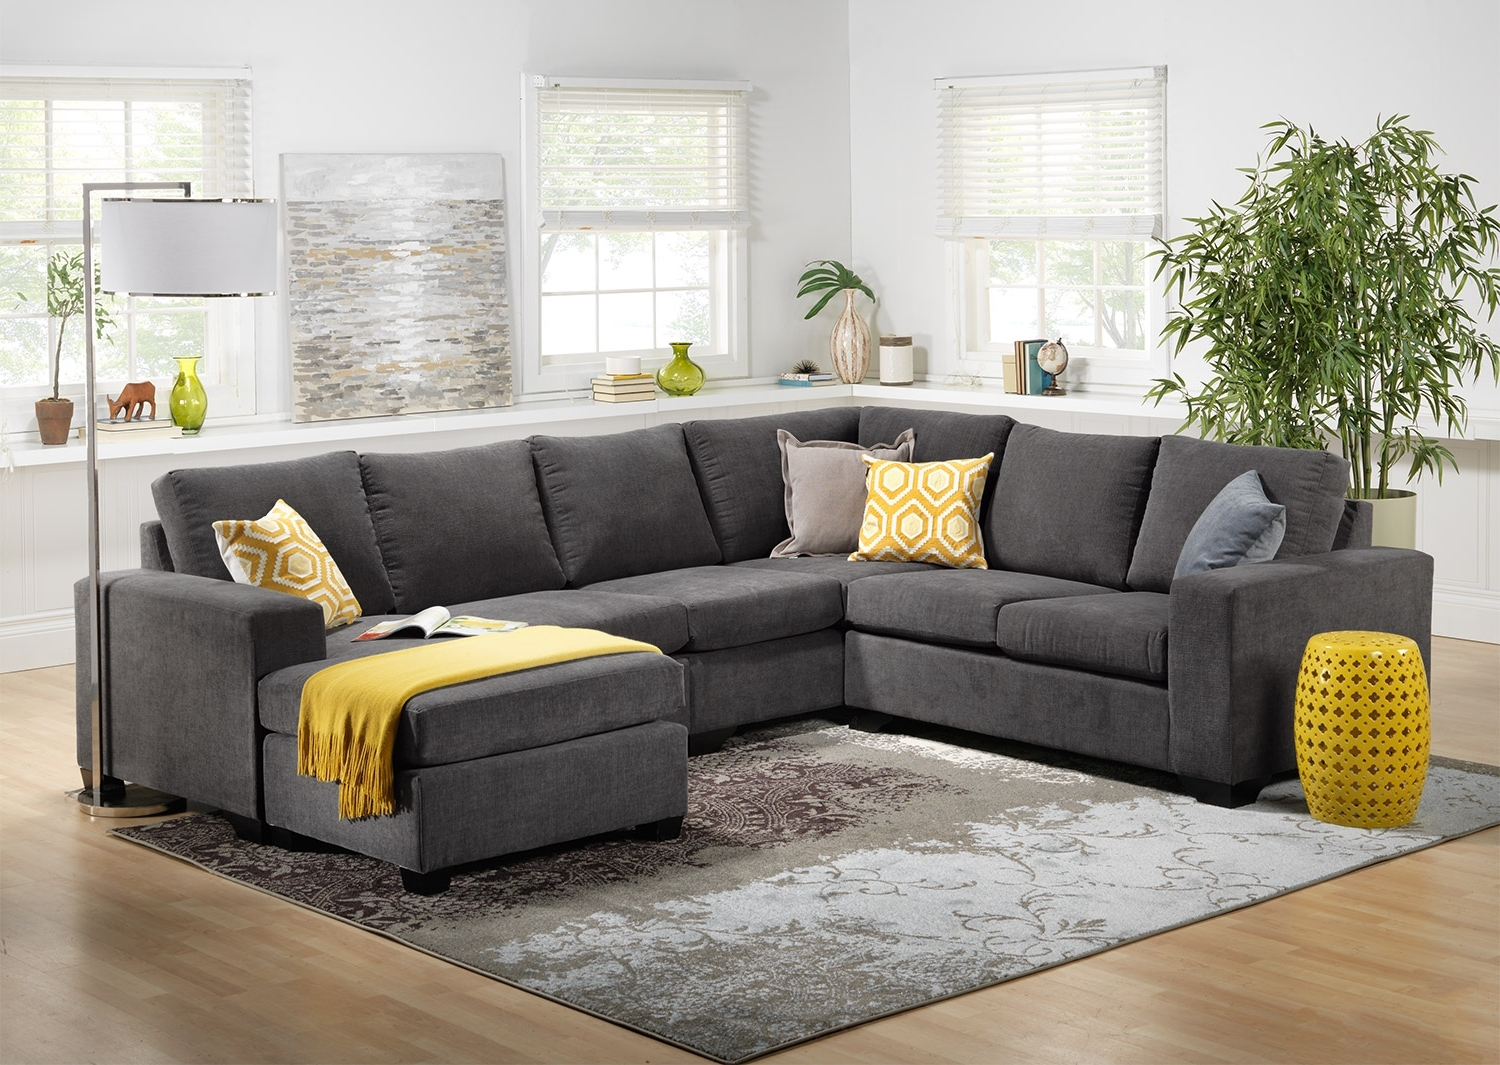 Danielle 3 Piece Sectional With Right Facing Corner Wedge – Grey In Most Up To Date Sectional Sofas At Bc Canada (View 5 of 20)